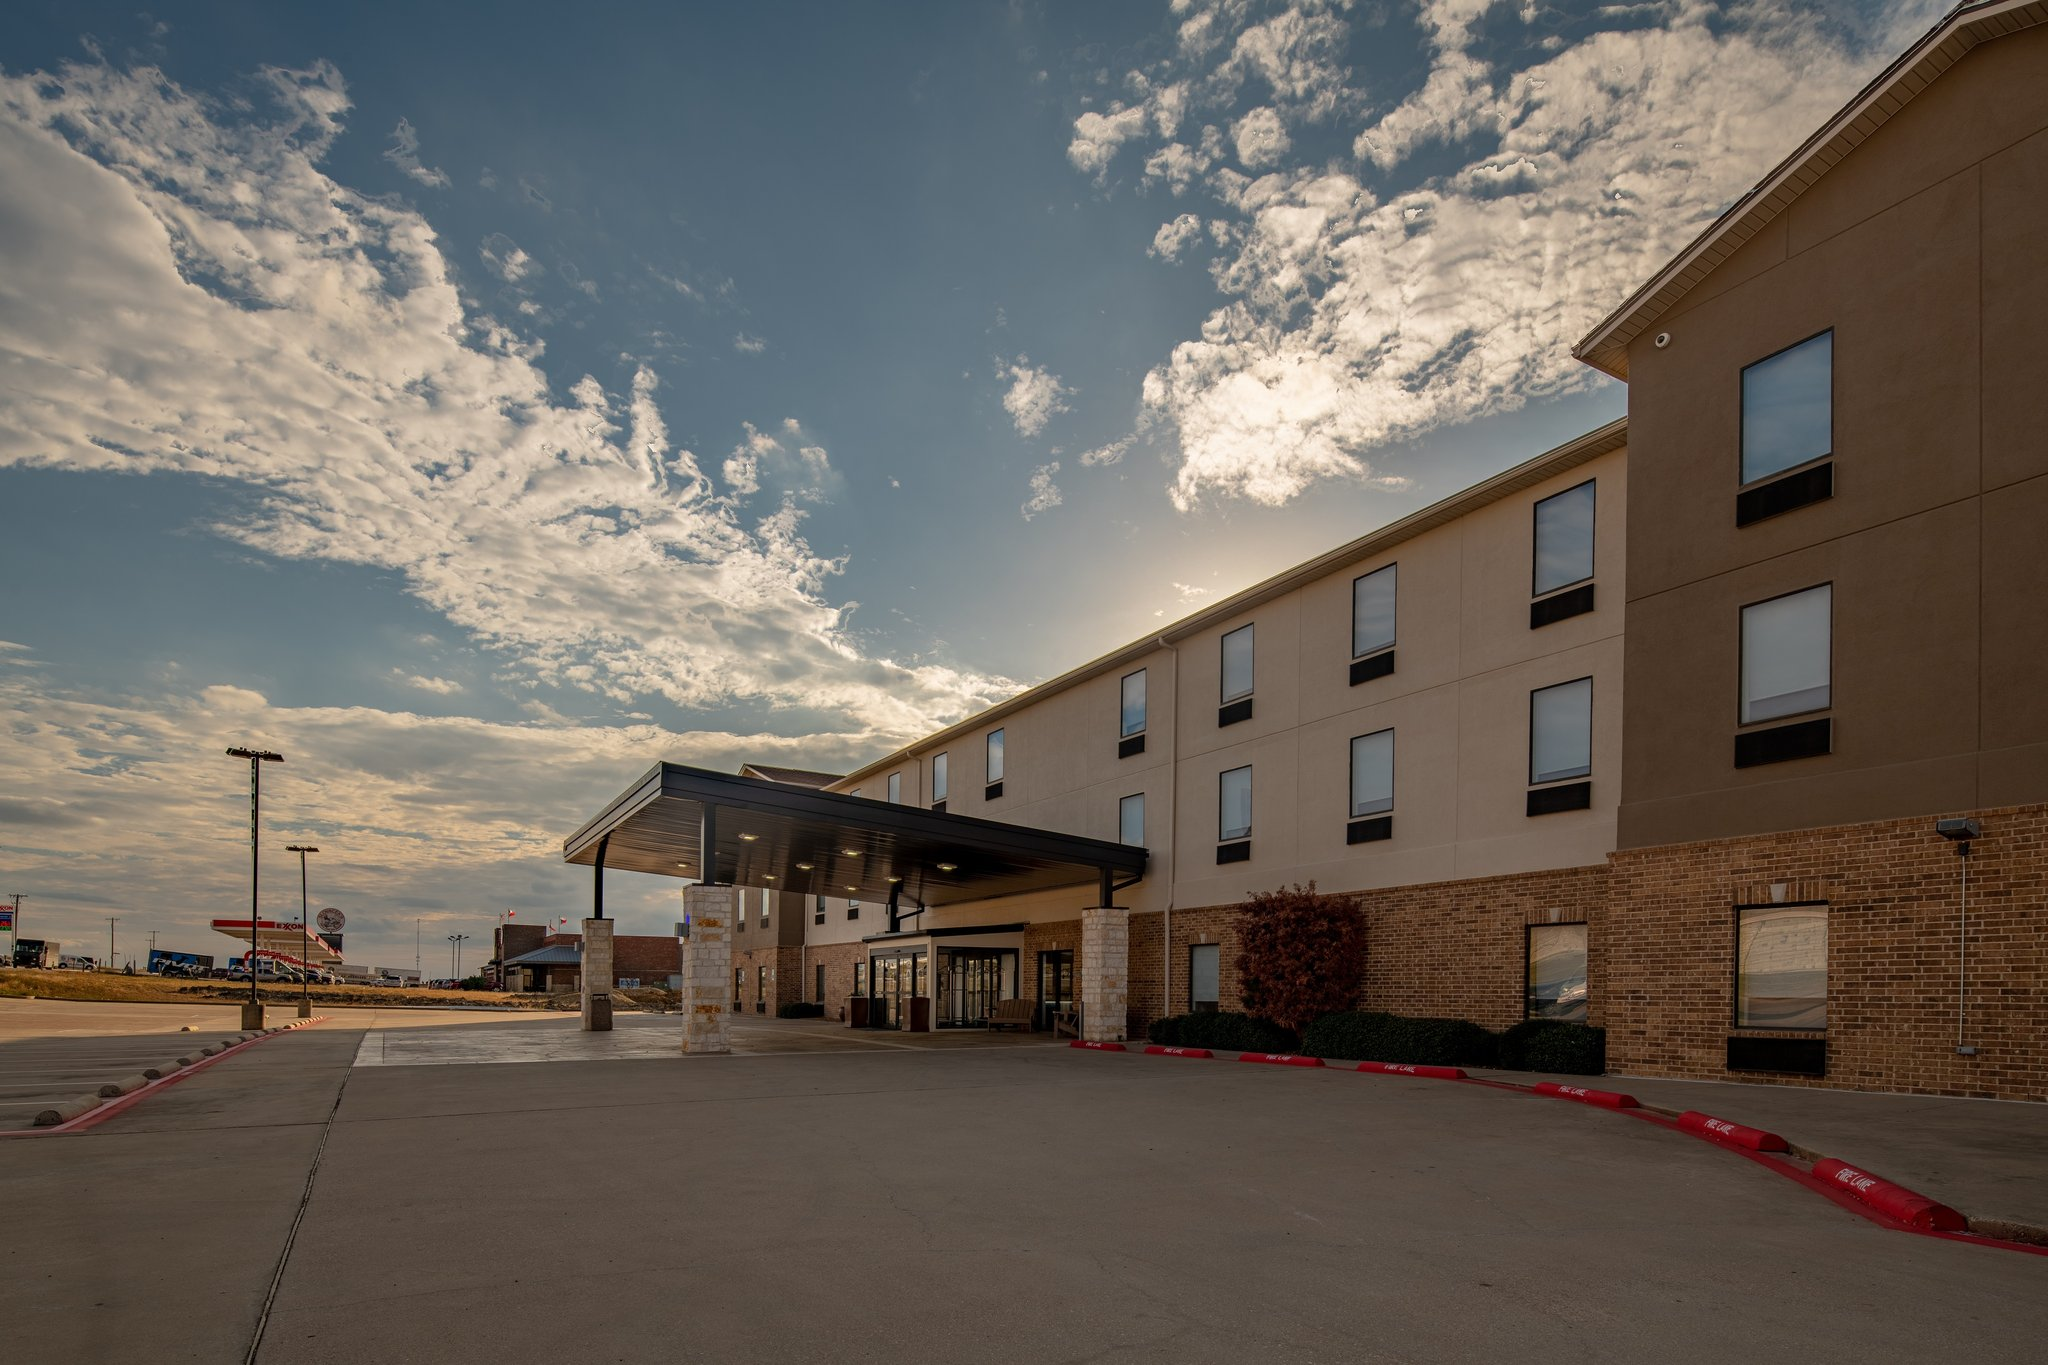 Holiday Inn Express & Suites N Waco Area